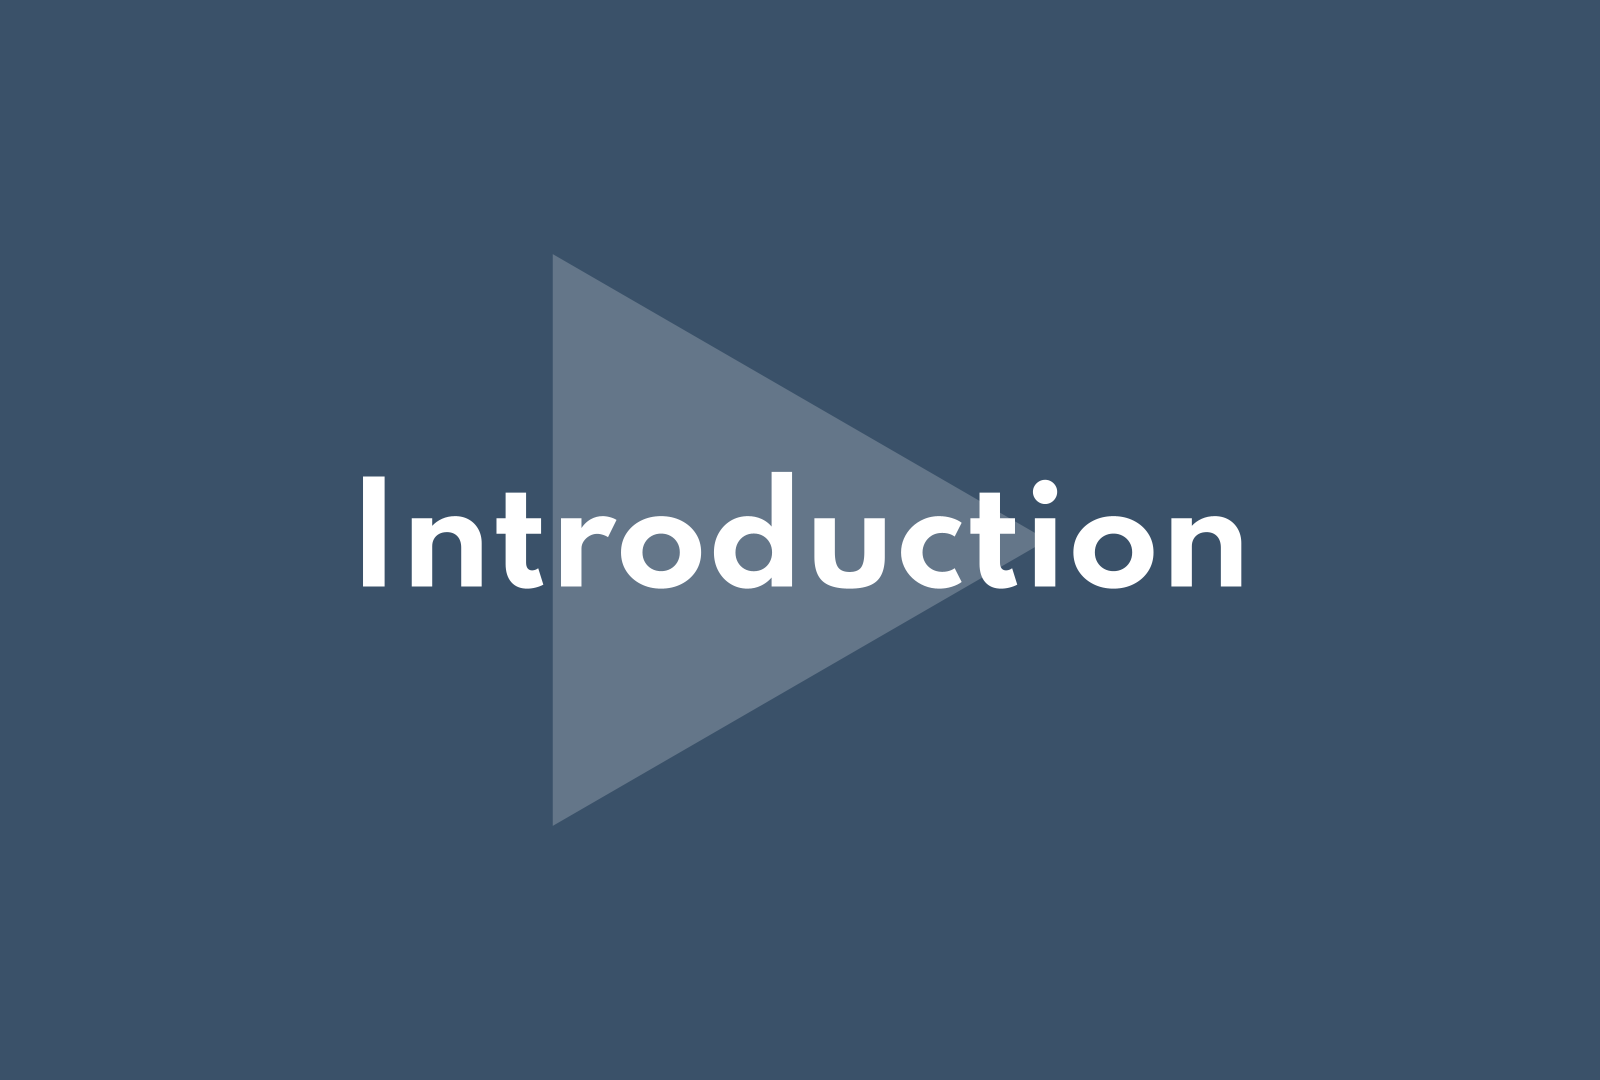 Introduction to vaccine video series